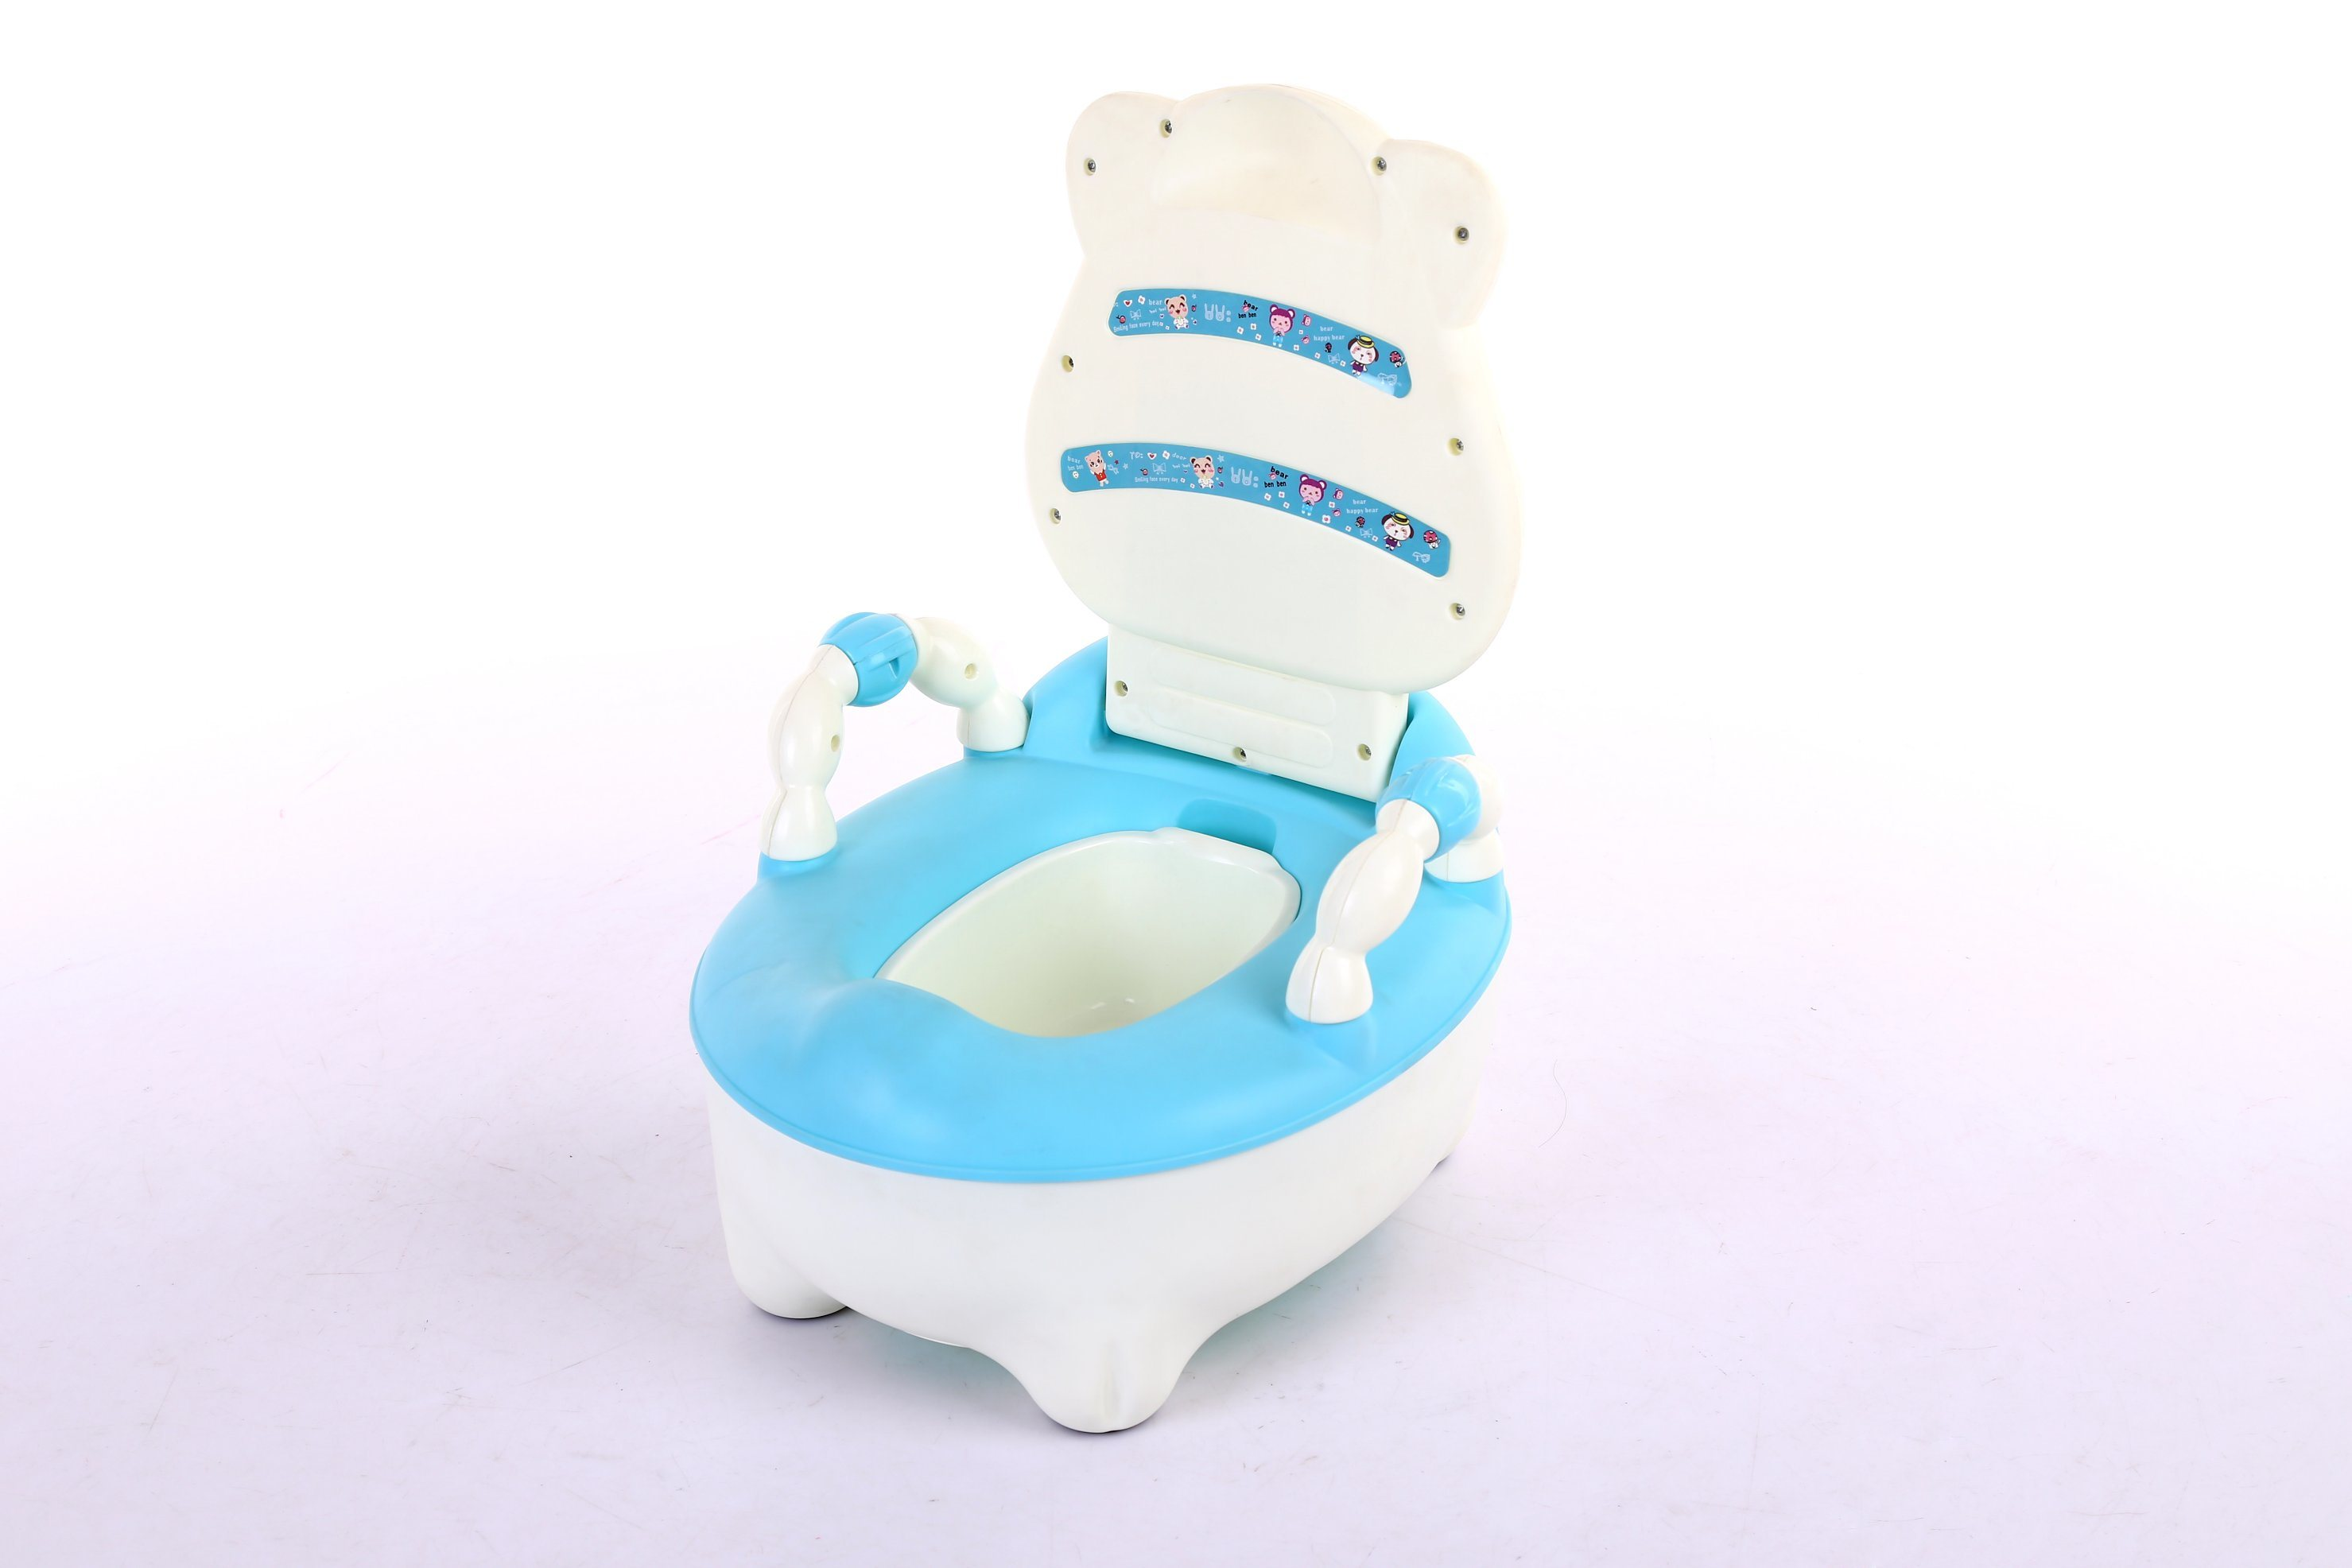 3 in 1 Kids Baby Toilet Seat Toddler Training Potty Trainer Safety Chair Urinal